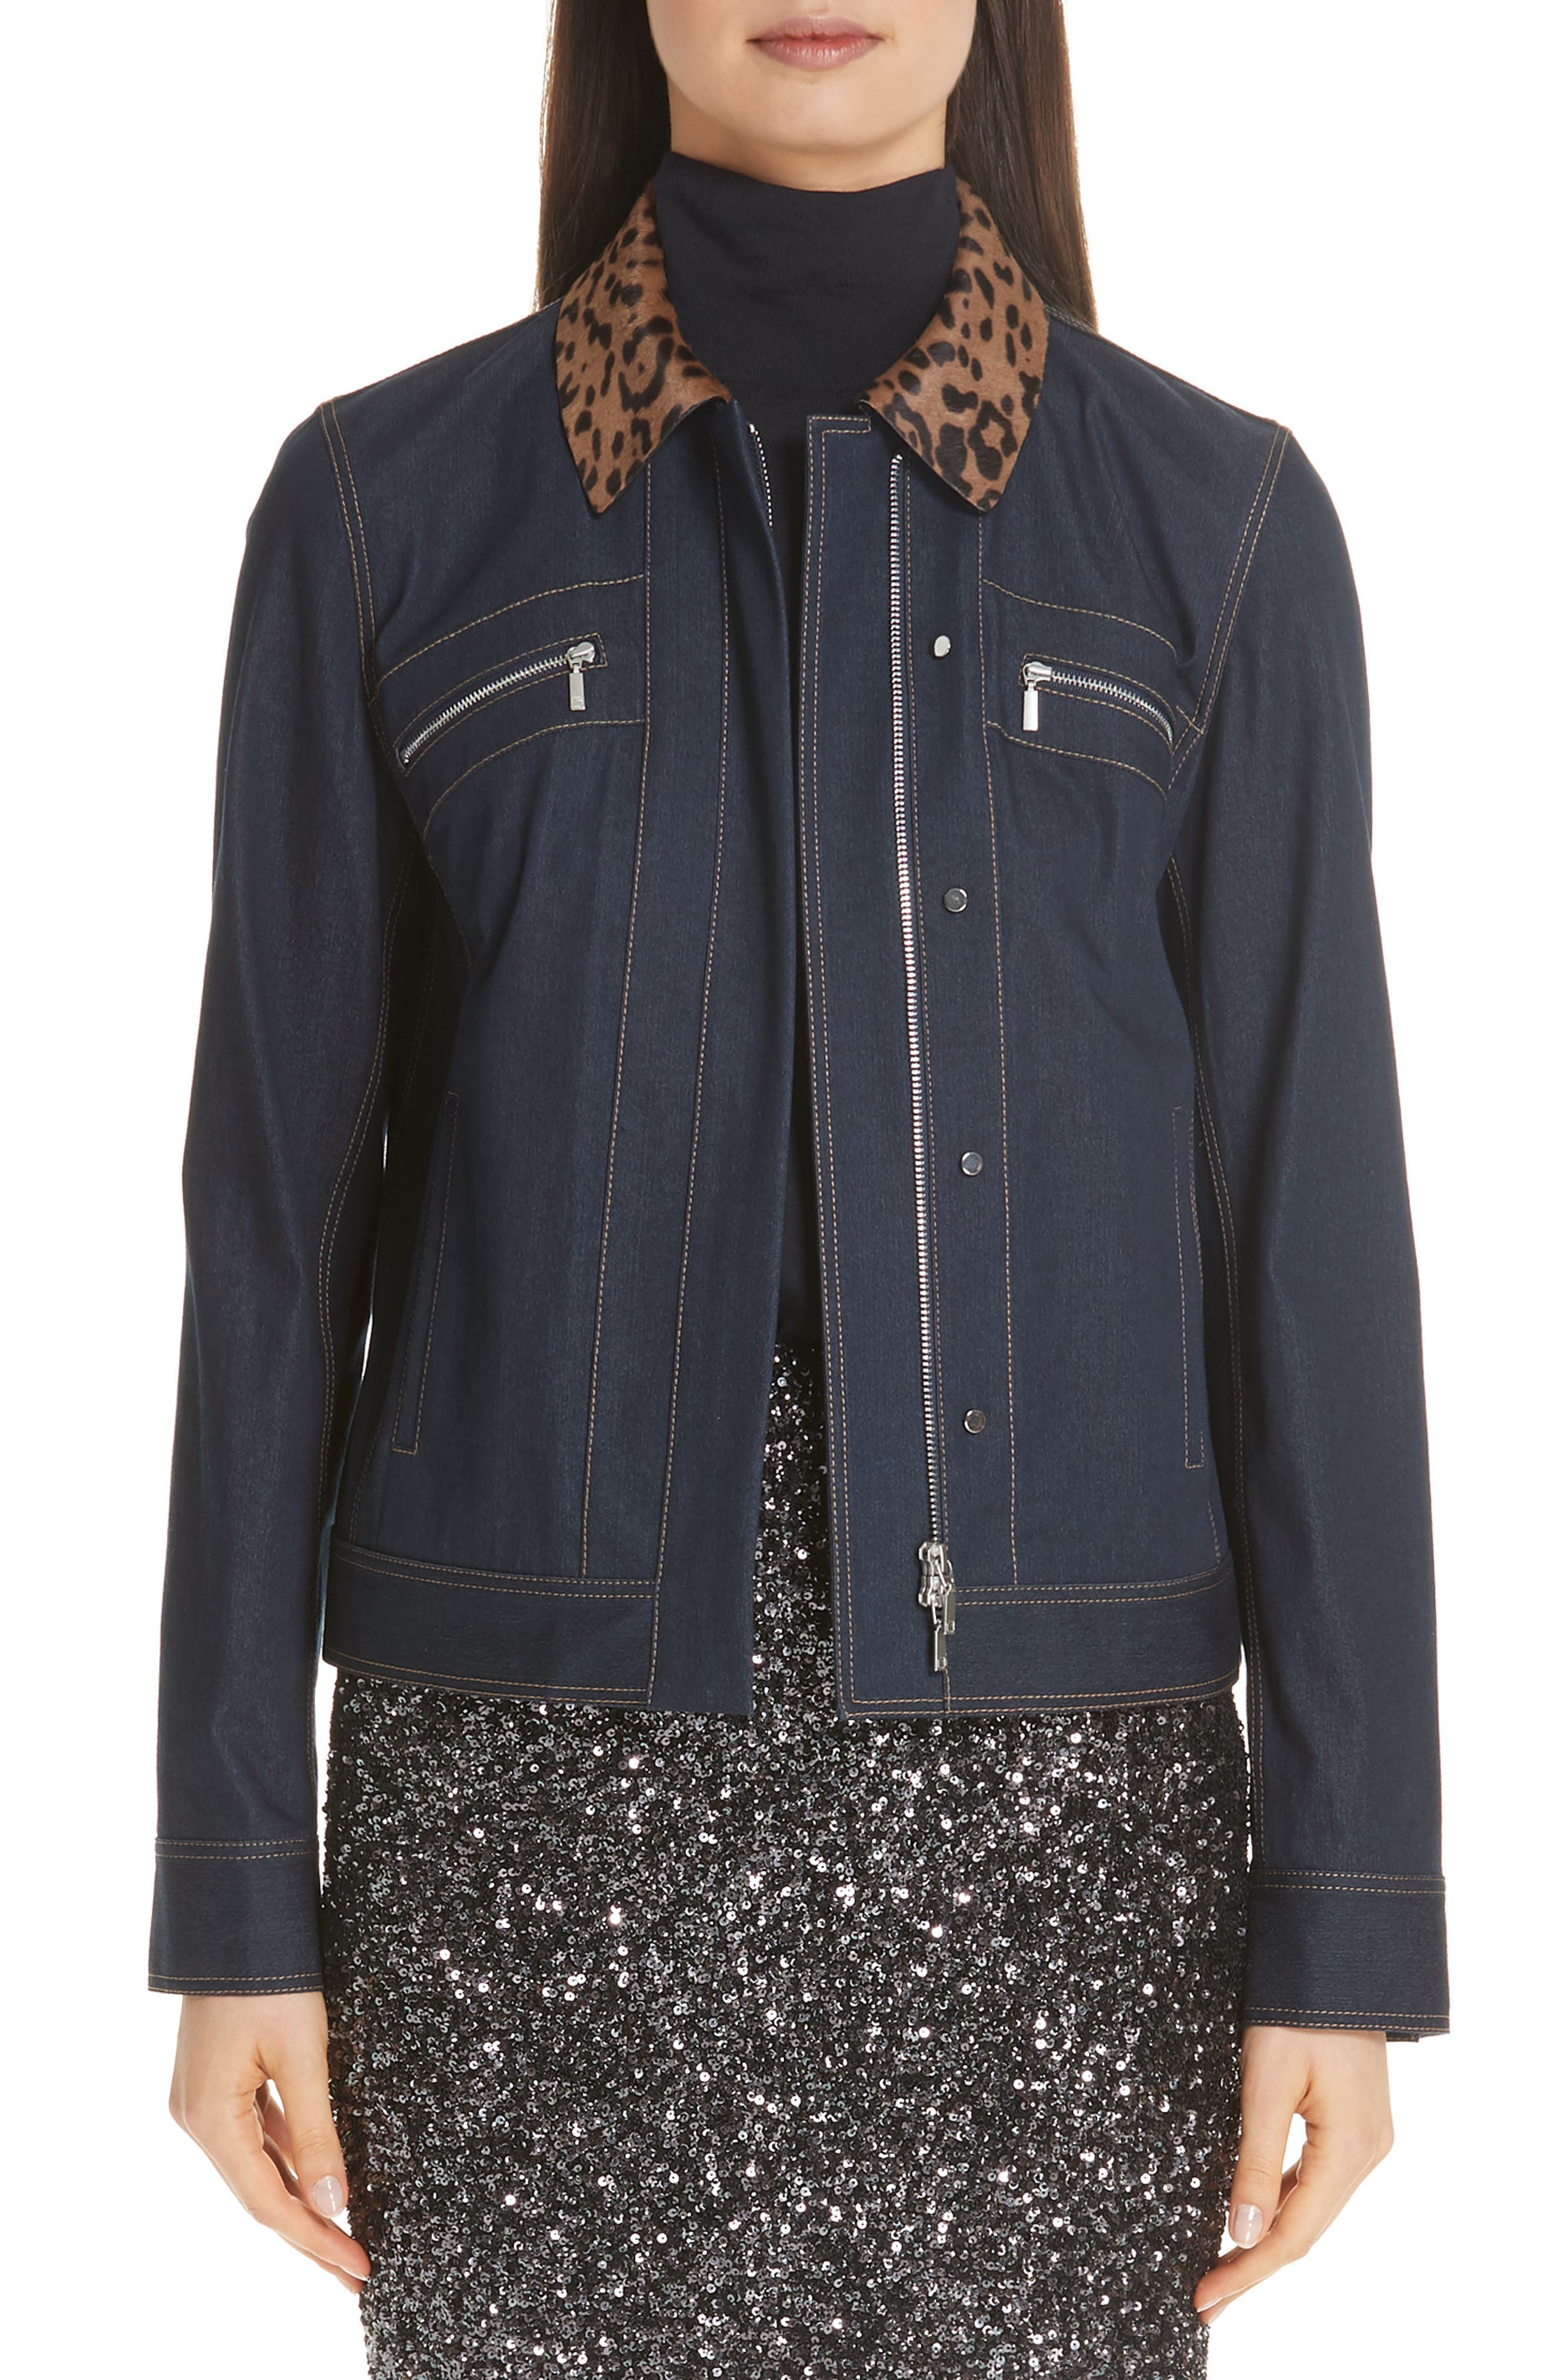 Kesha Primo Denim Jacket with Print Genuine Calf Hair Collar,                             Main thumbnail 1, color,                             400